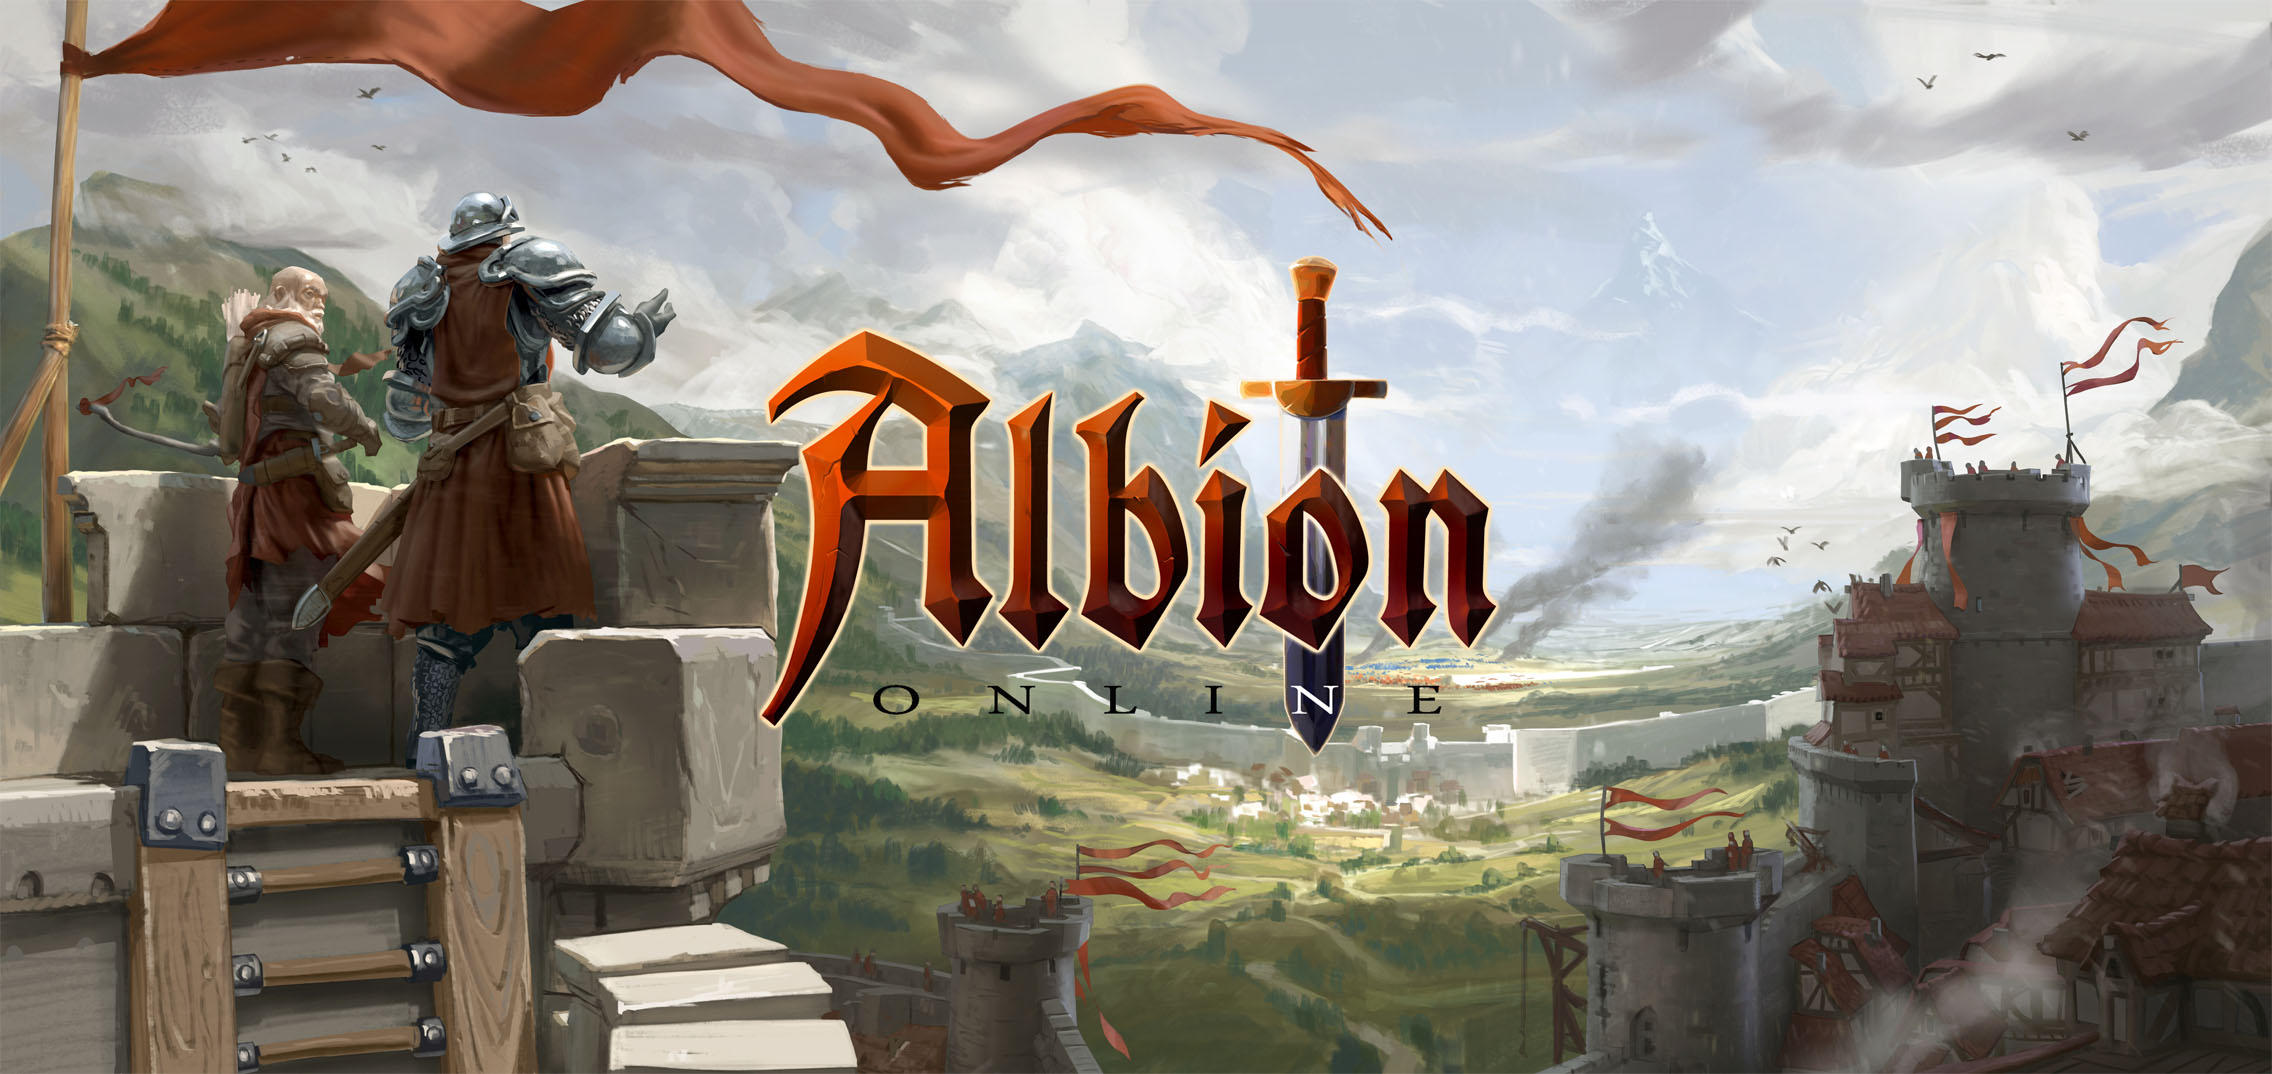 The Albion Online MMORPG Will Be Officially Launched